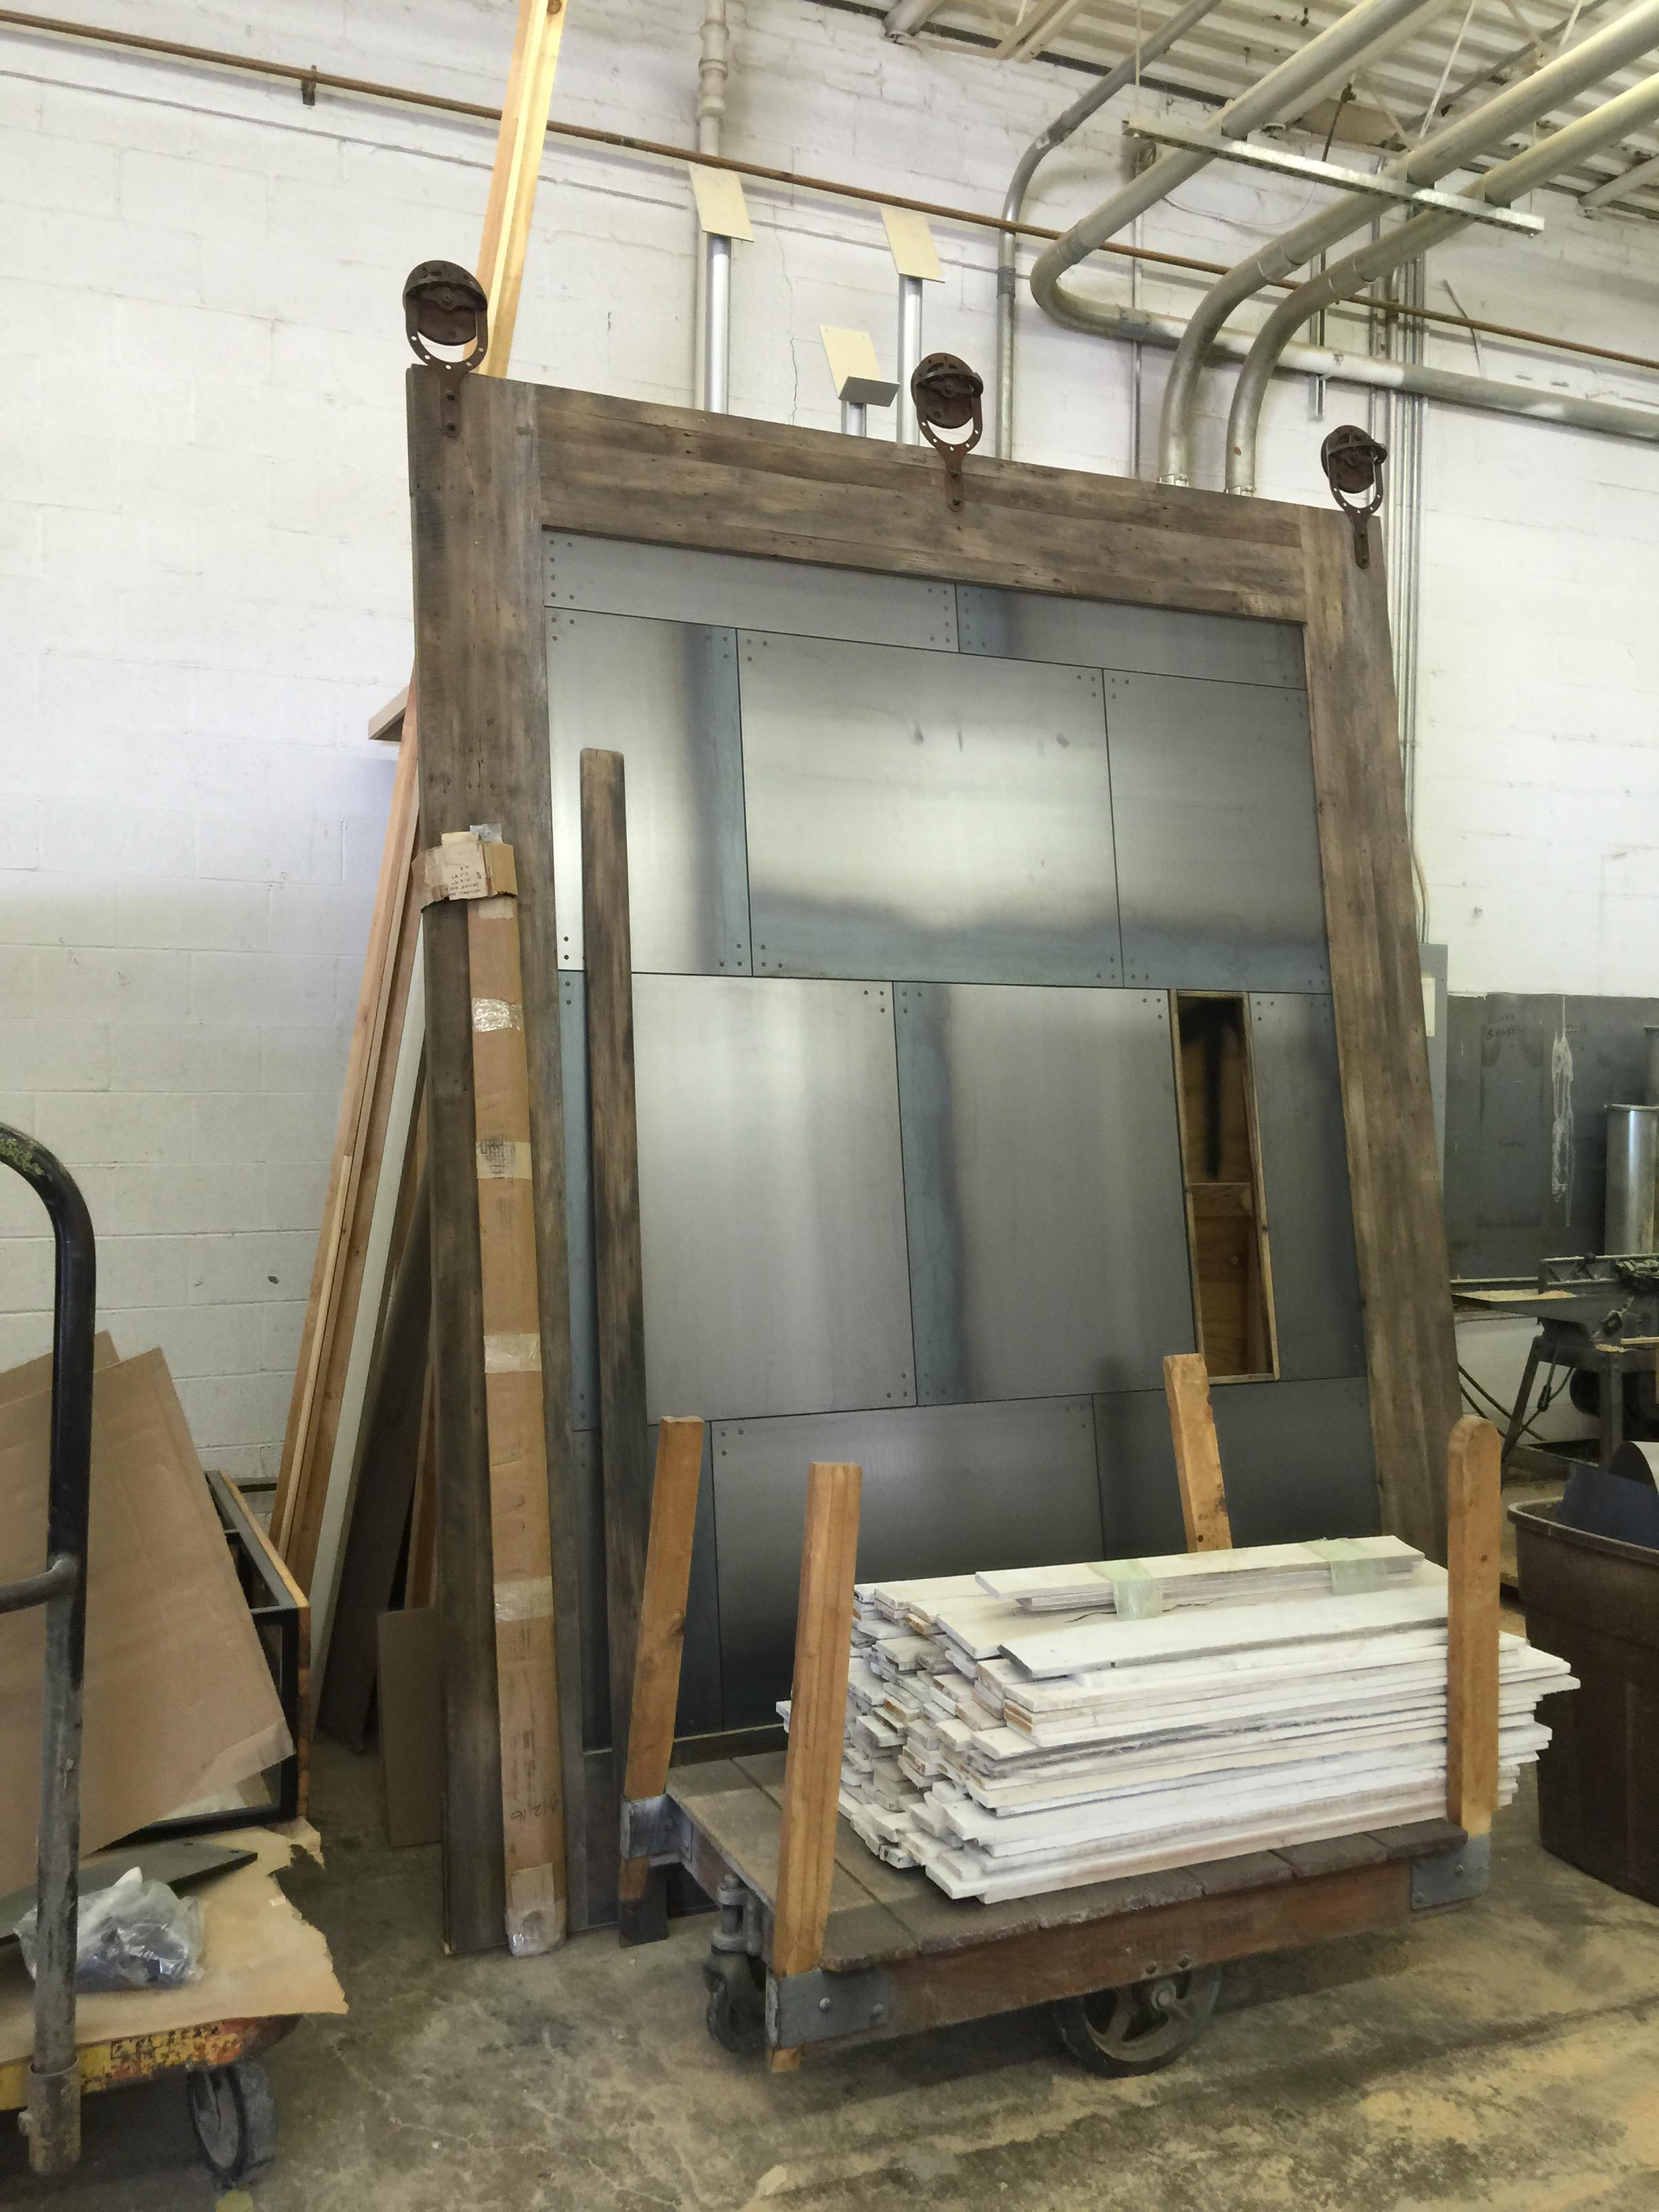 Big Tex barn door during construction, Barn door during fabrication